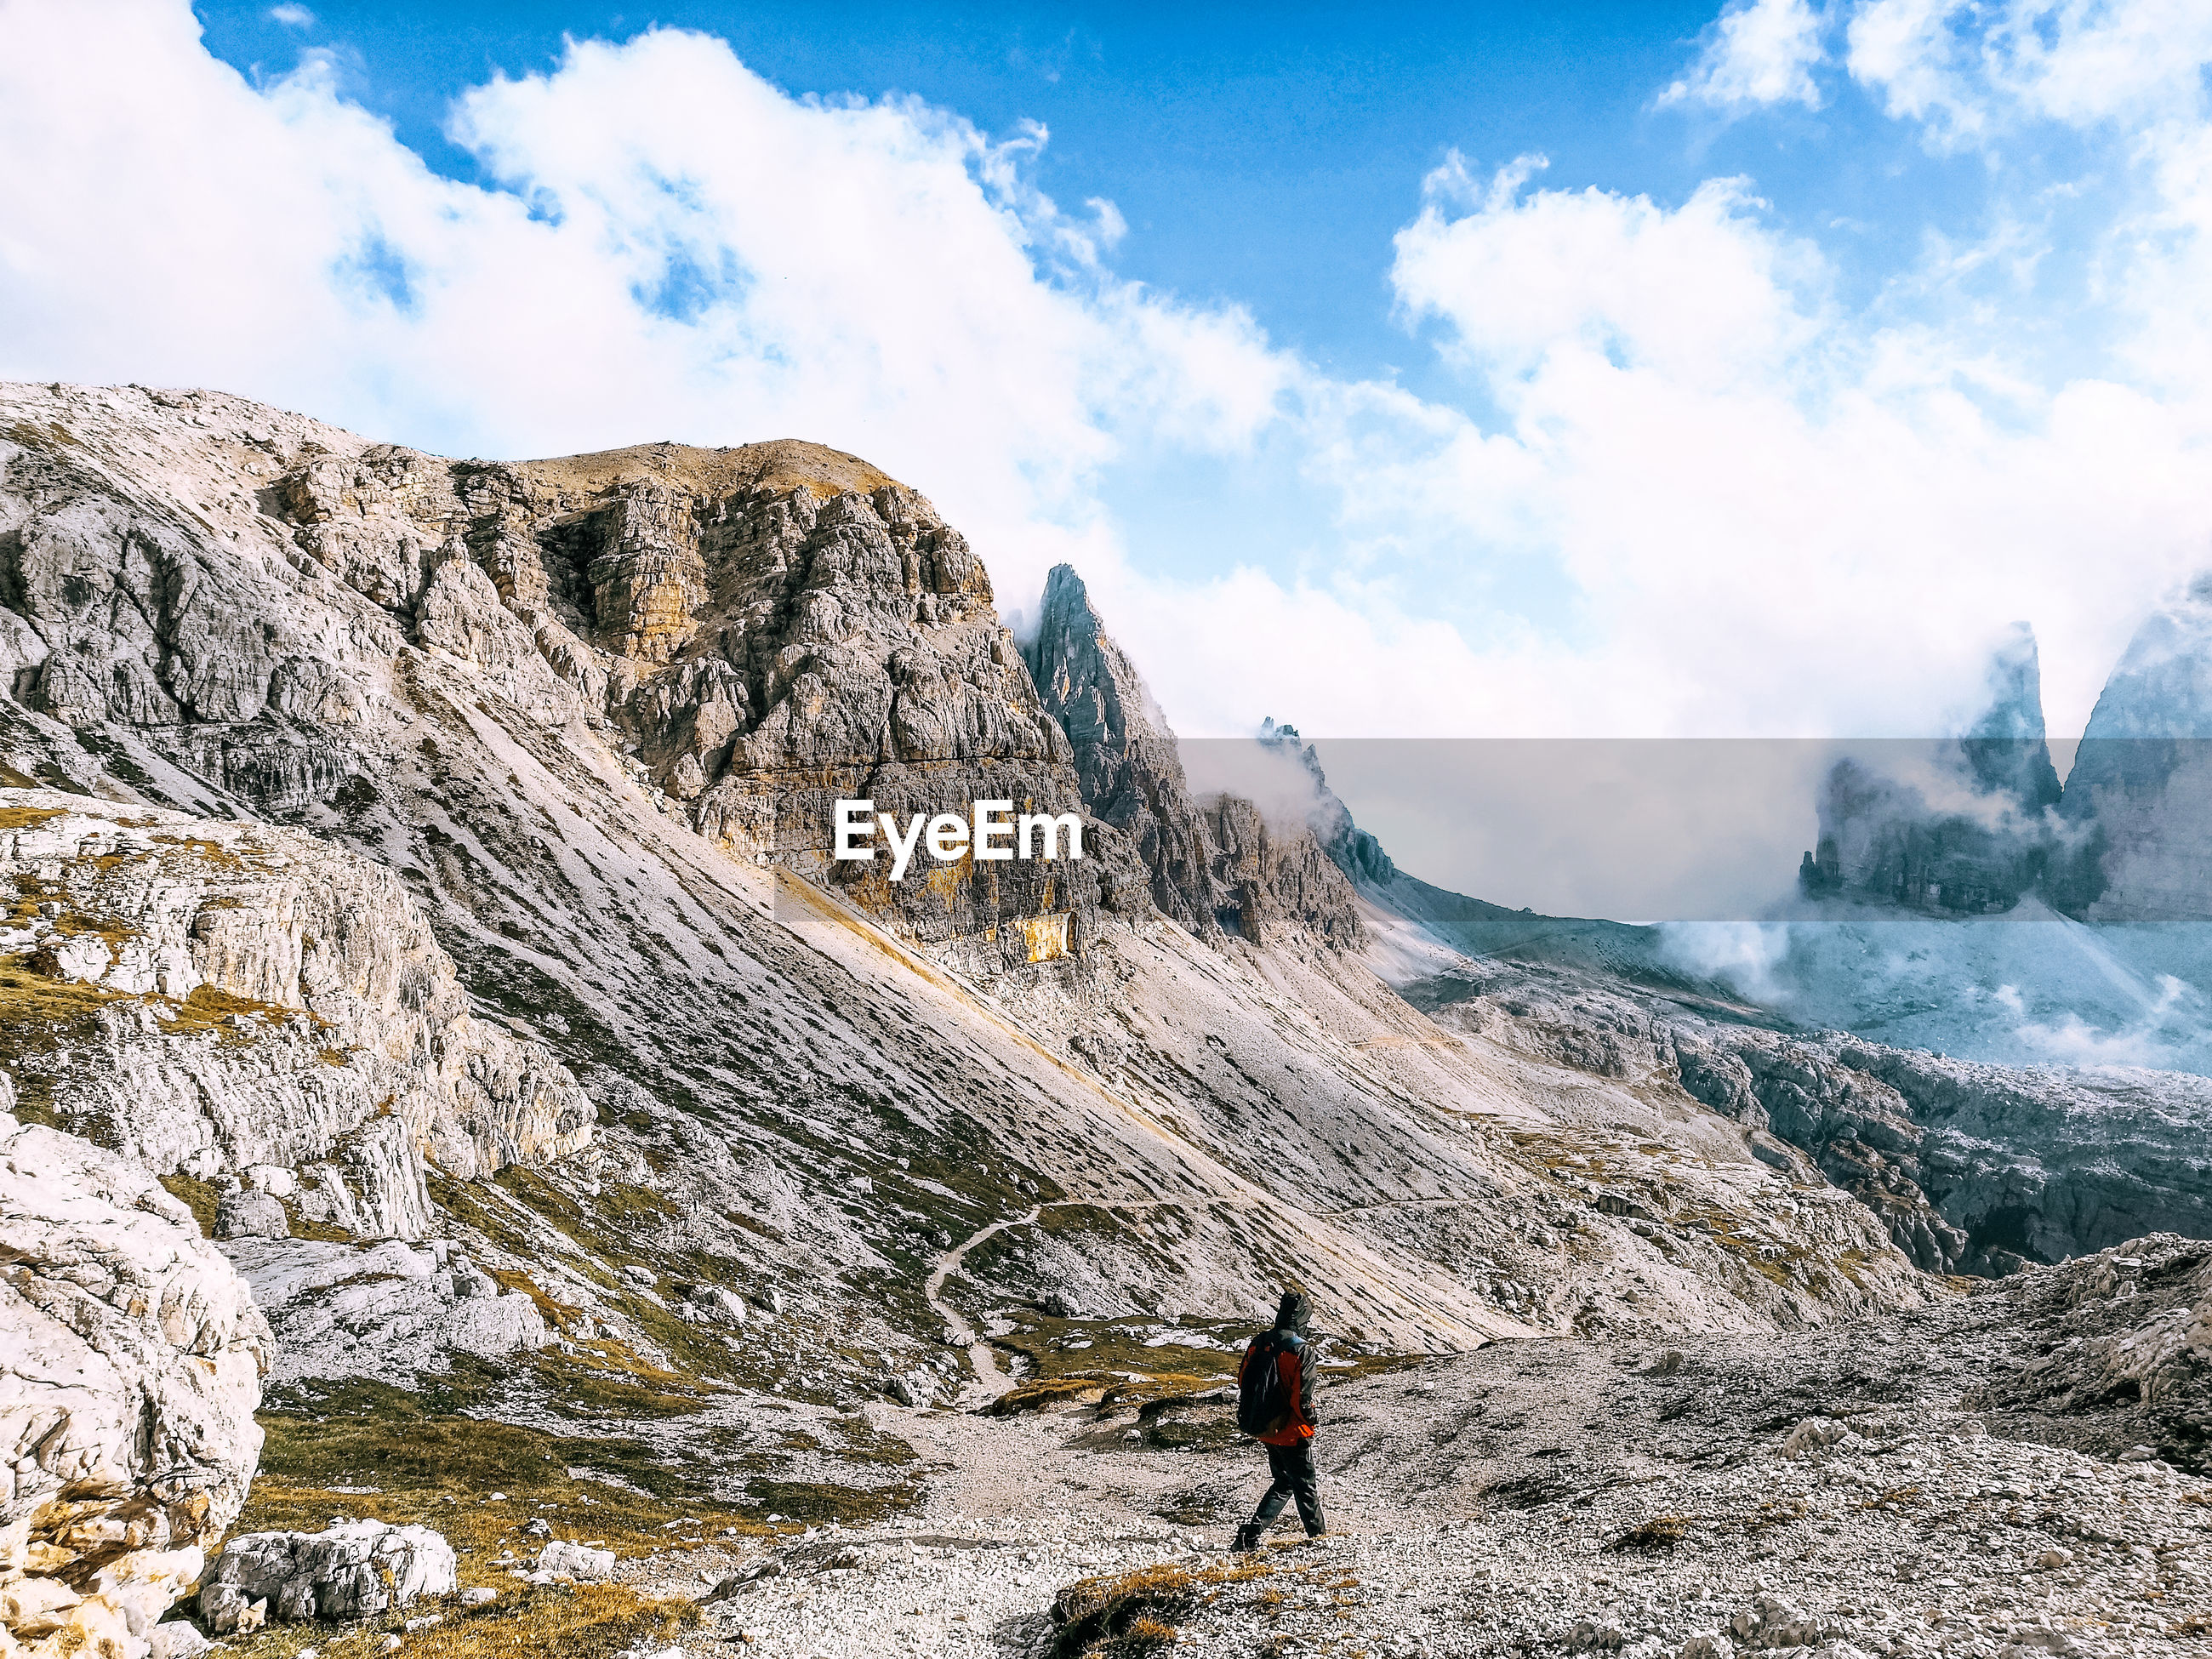 Man walking on rocks by mountains against sky